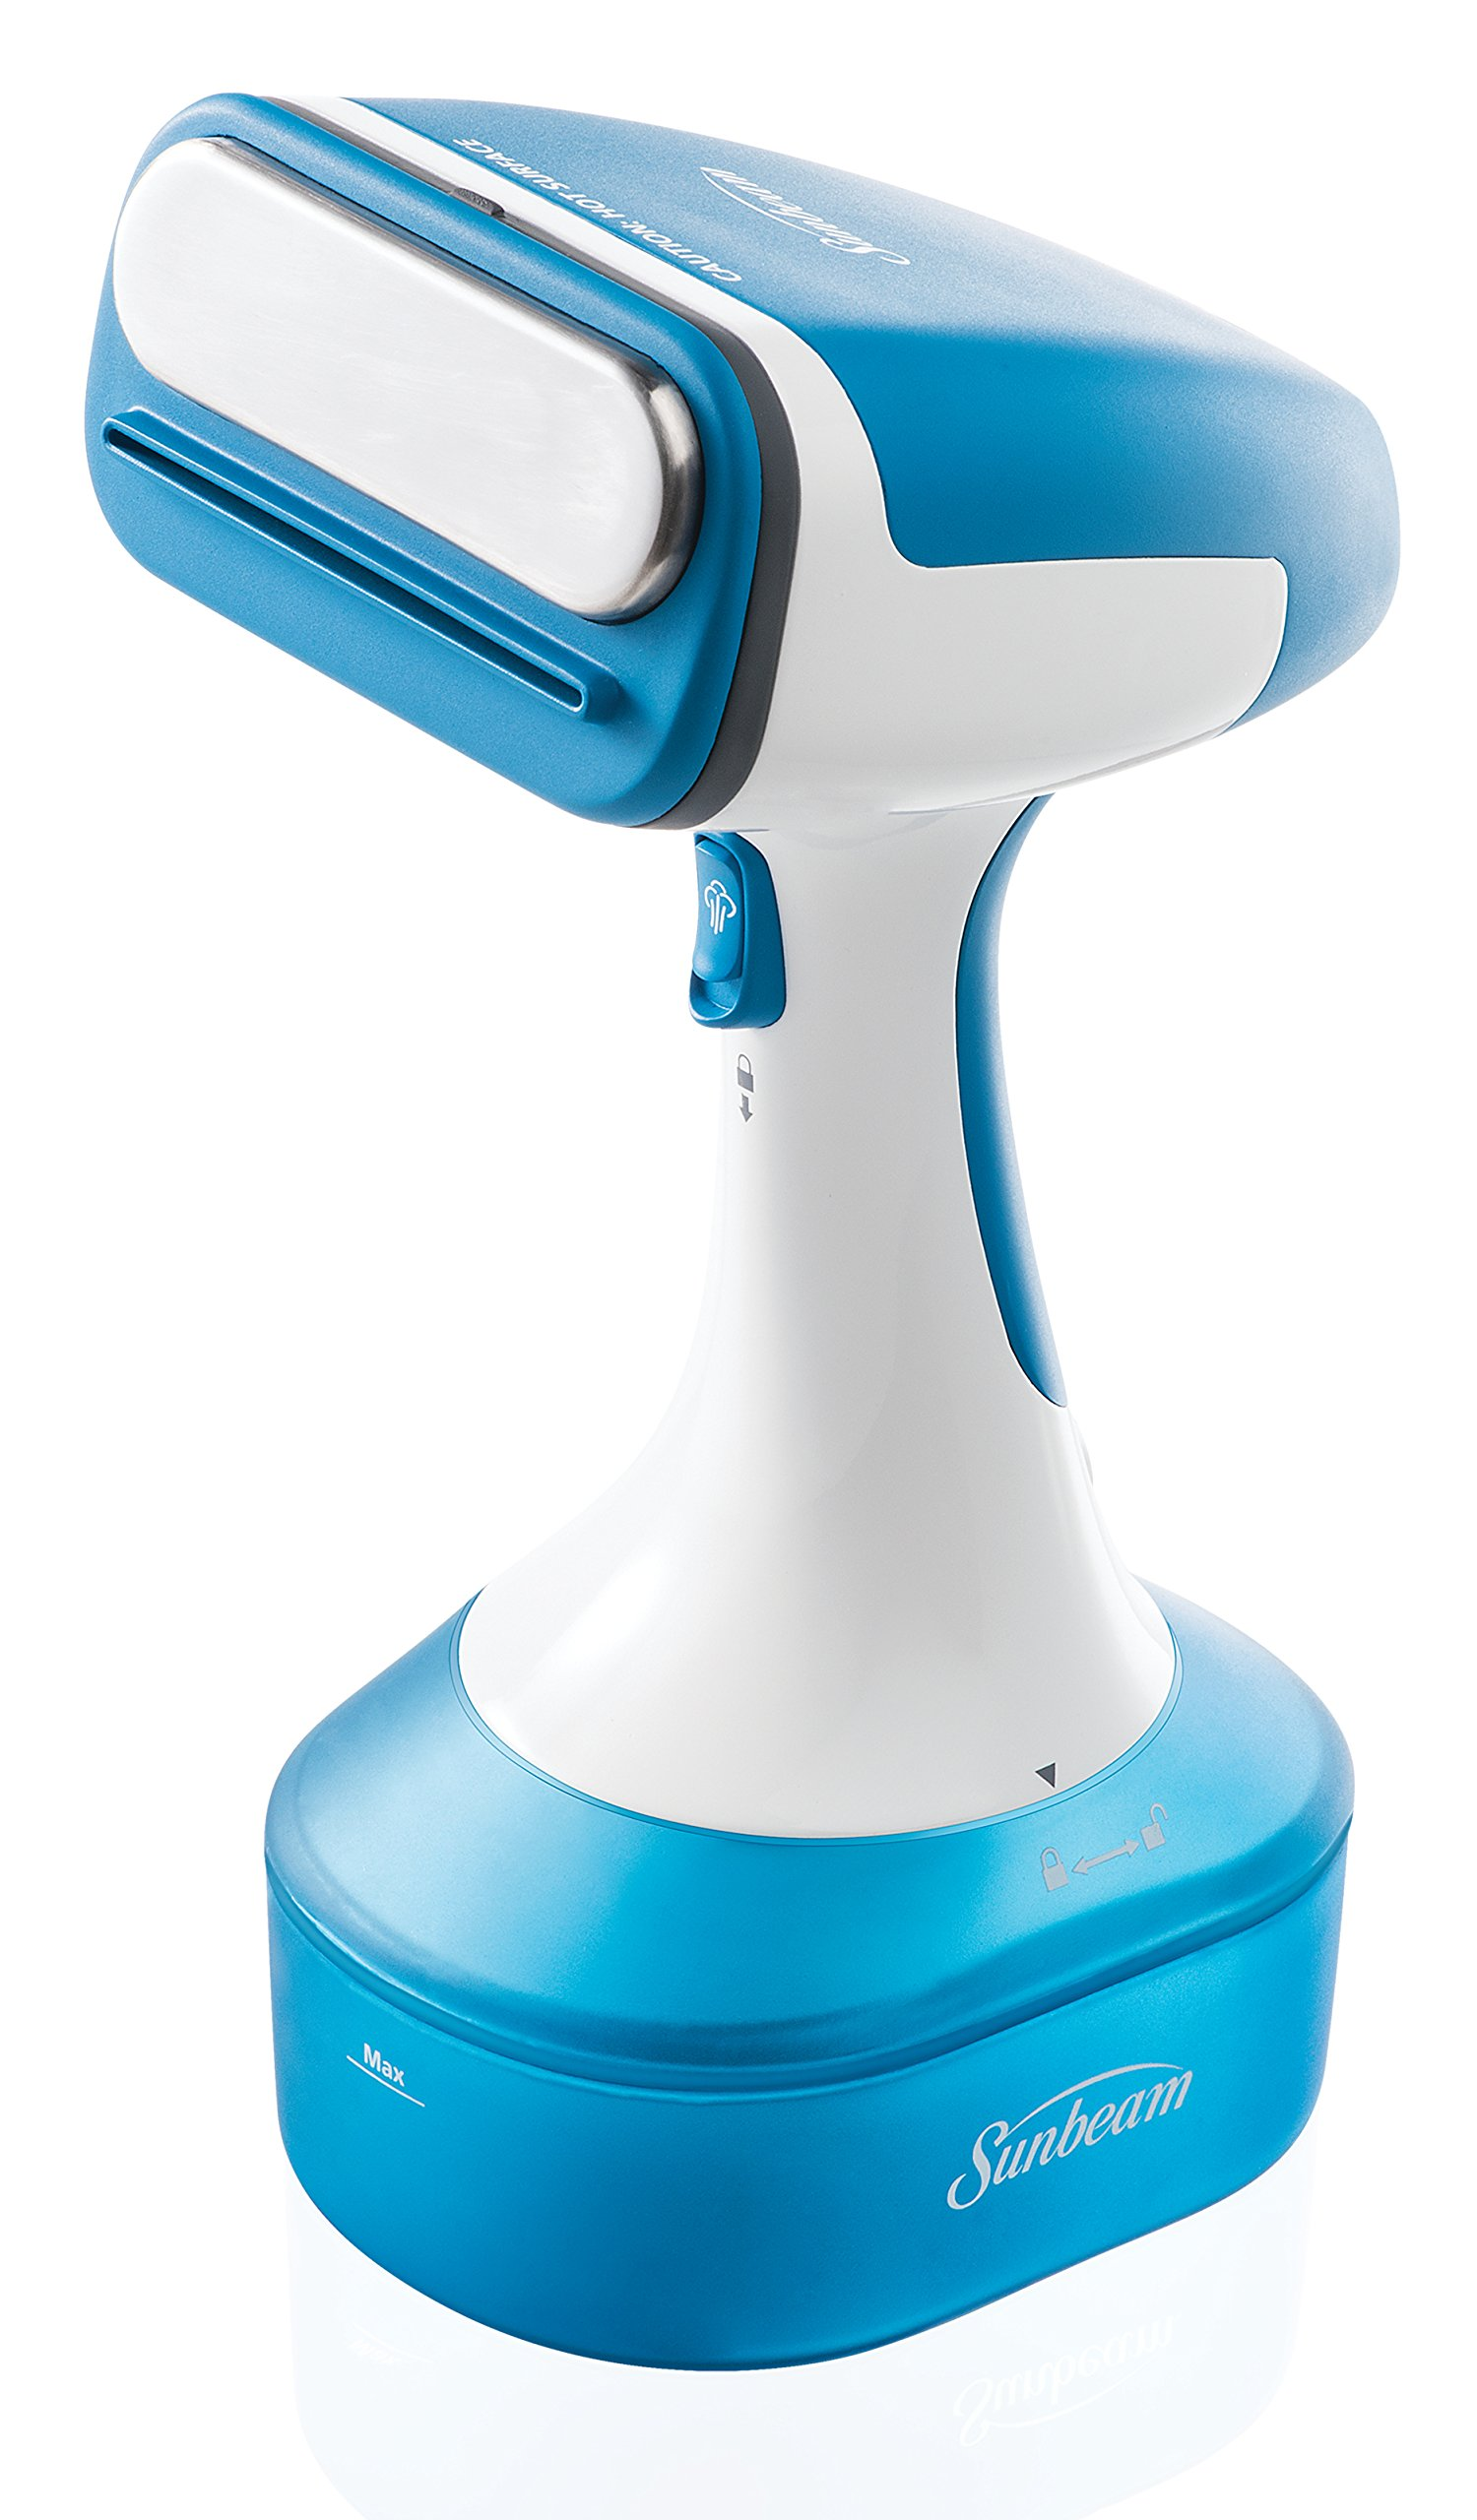 Sunbeam Handheld Garment Travel Steam Press for Clothes, Bedding, Fabric , Odor removing, Dust mites, Bed bugs by Sunbeam